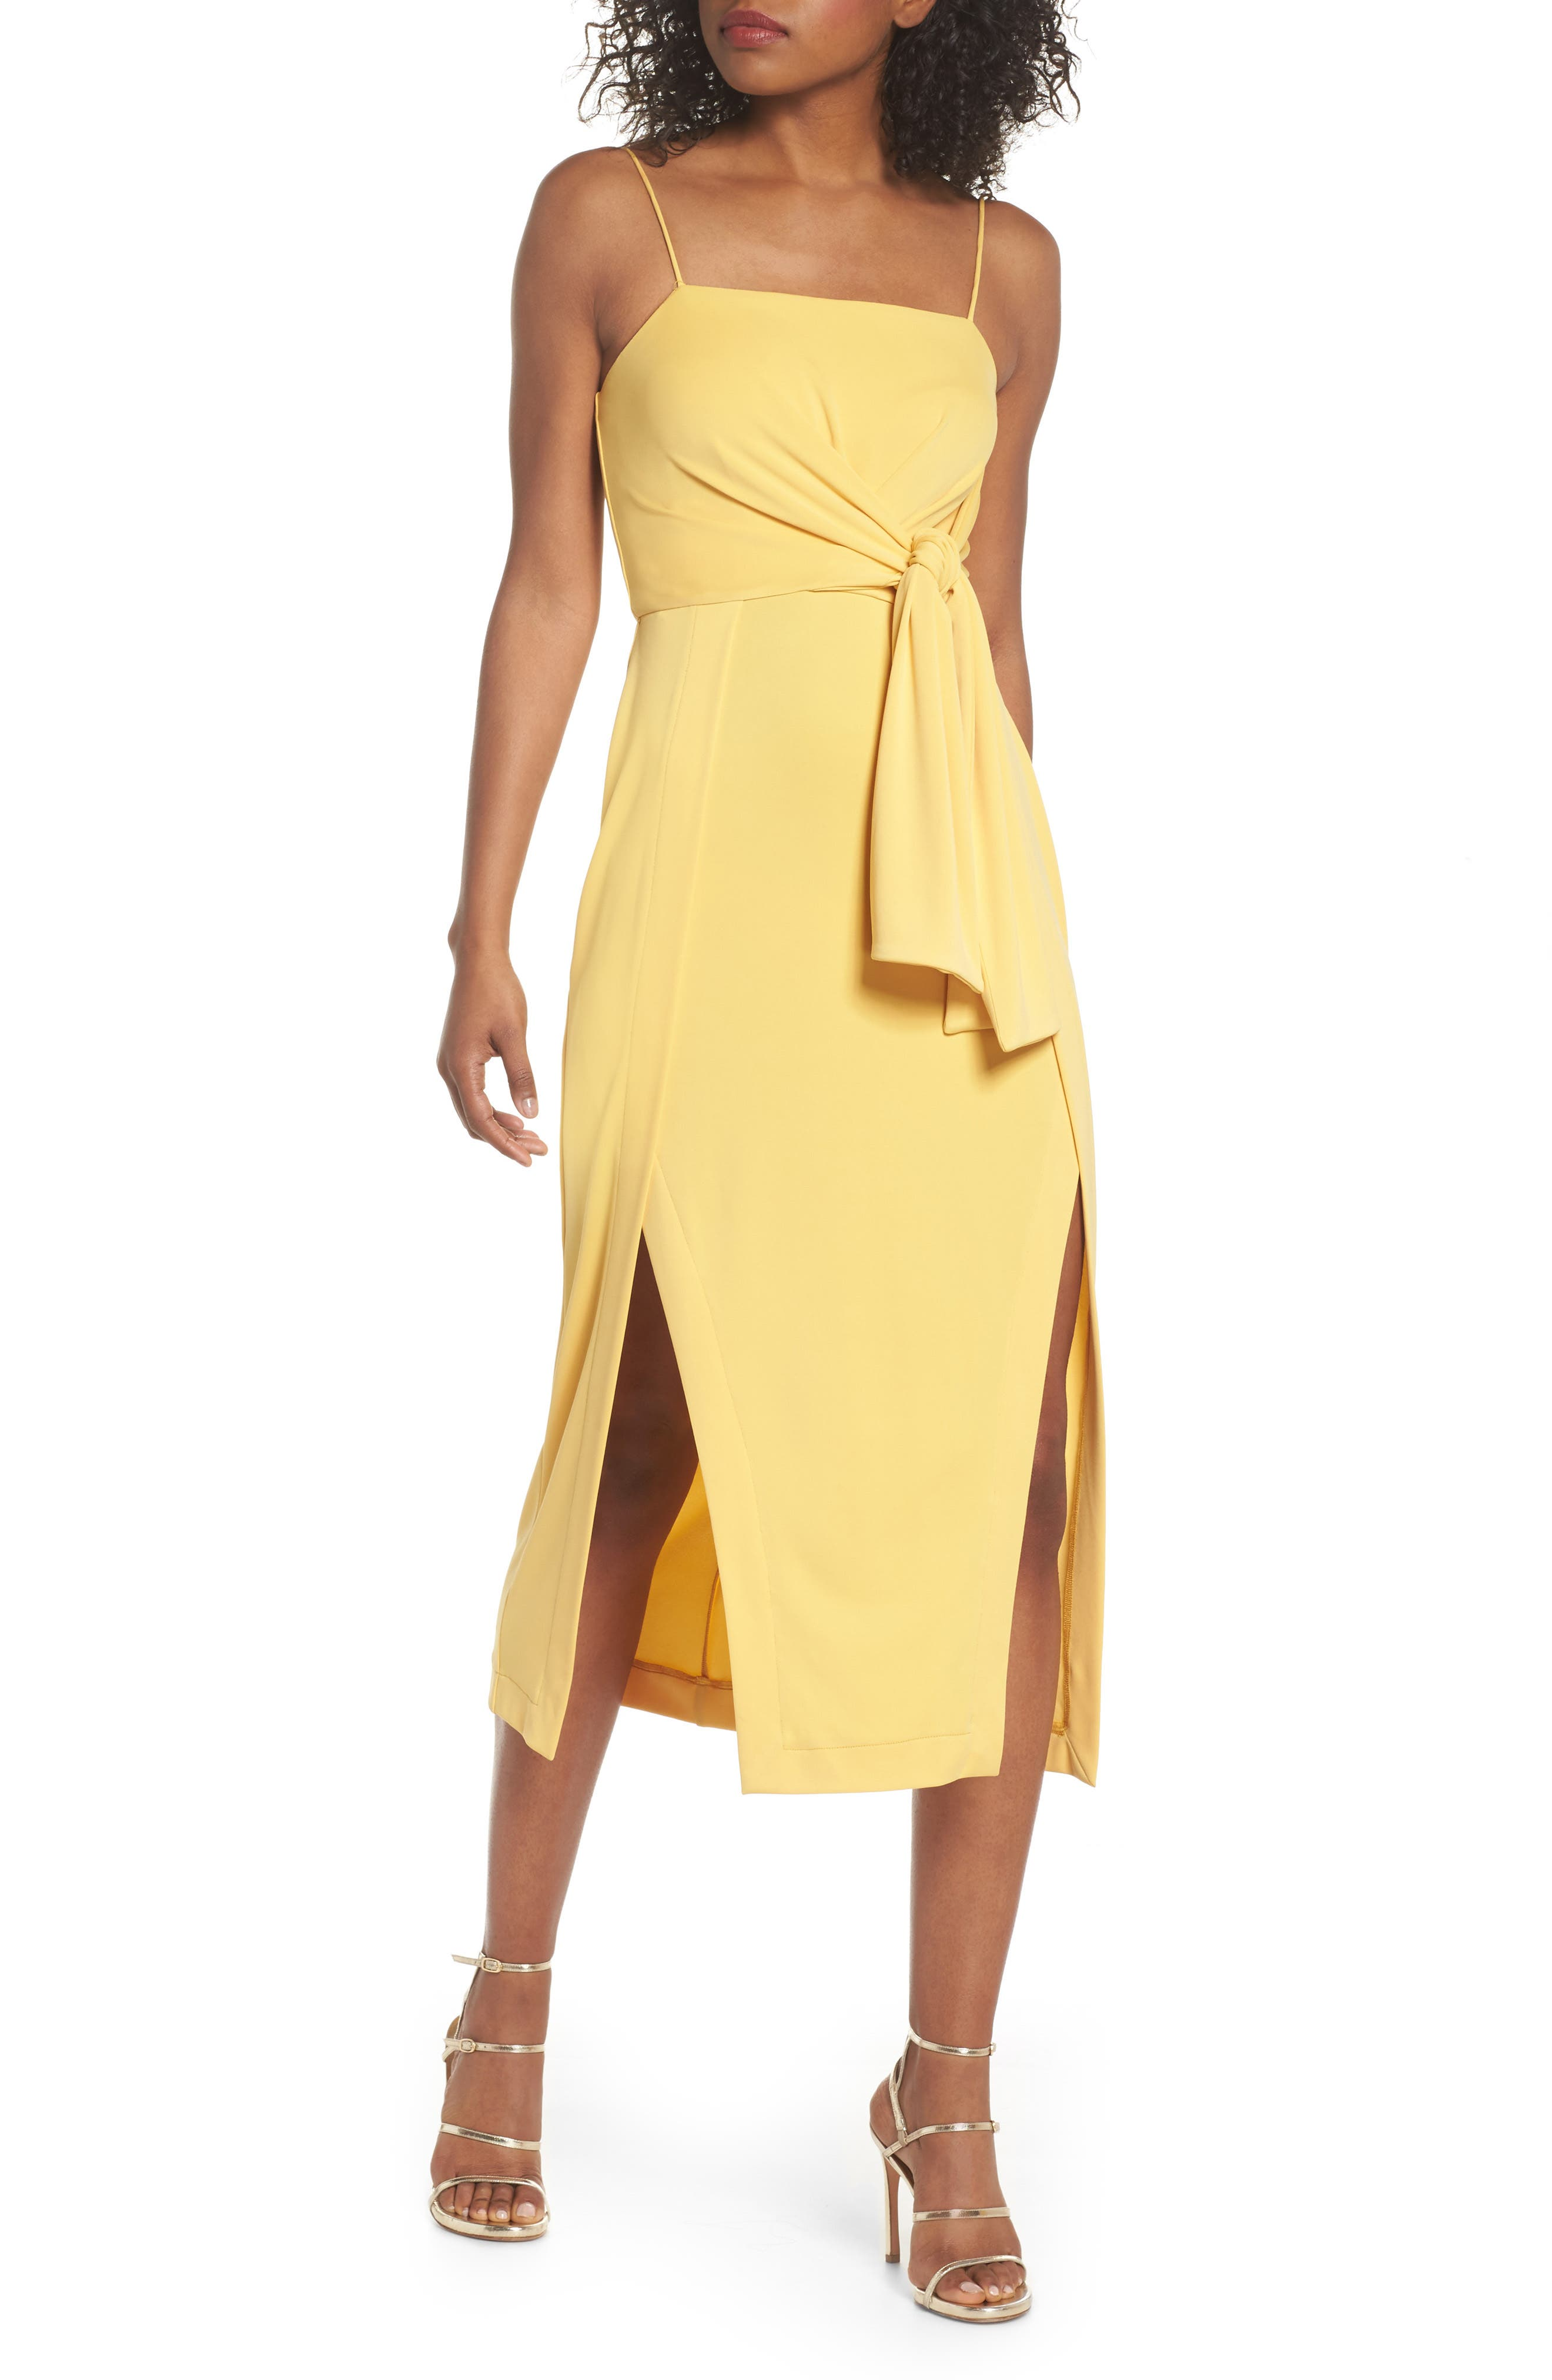 Recollect Slinky Side Tie Midi Dress,                         Main,                         color, 740